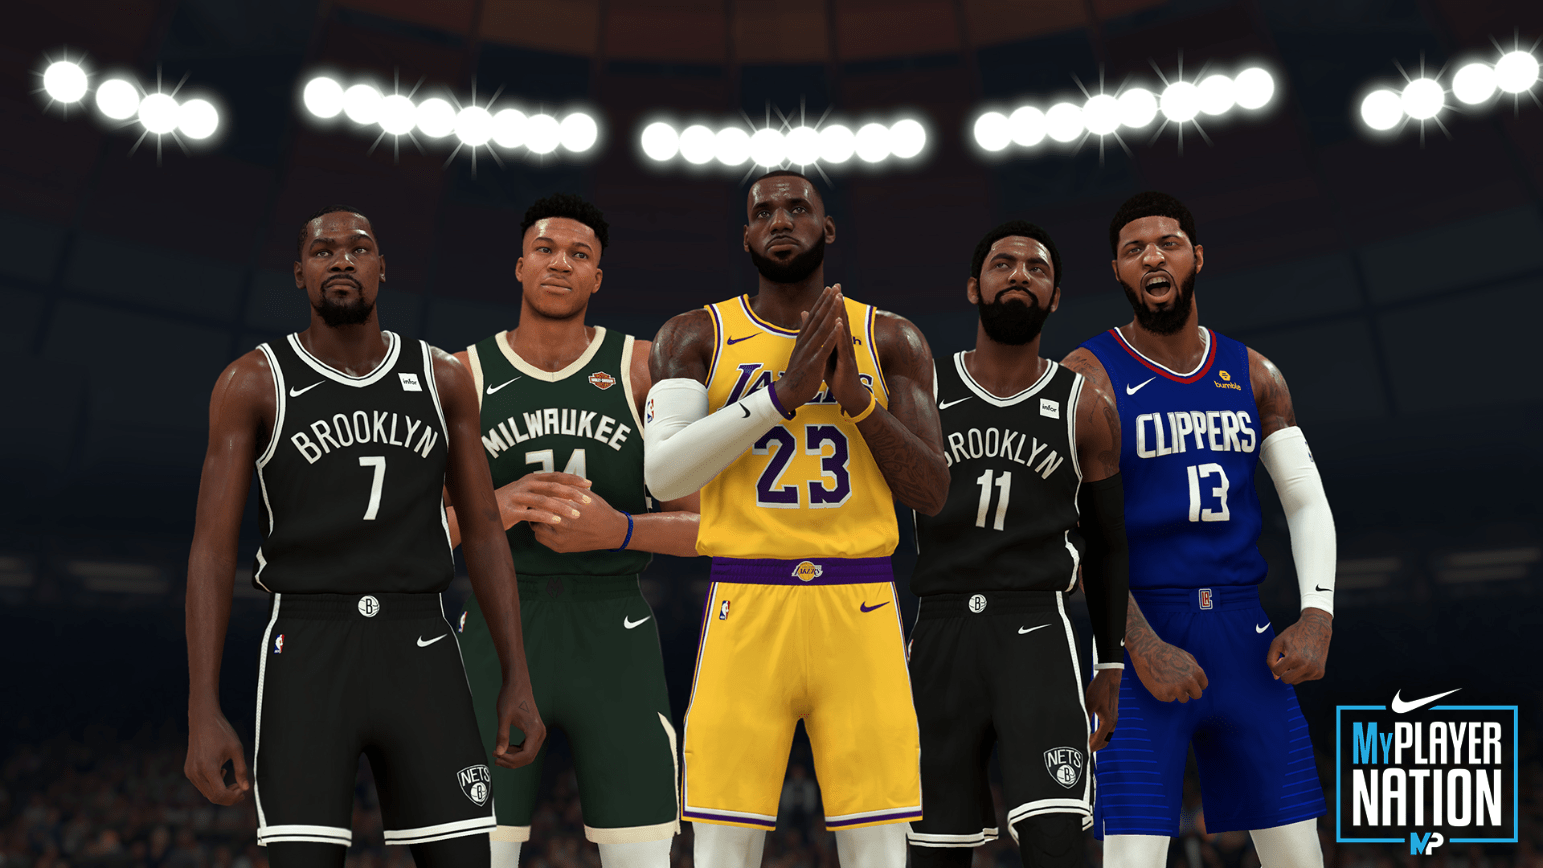 Europa-Finale der NBA 2K20 Global Championship am 25. Januar